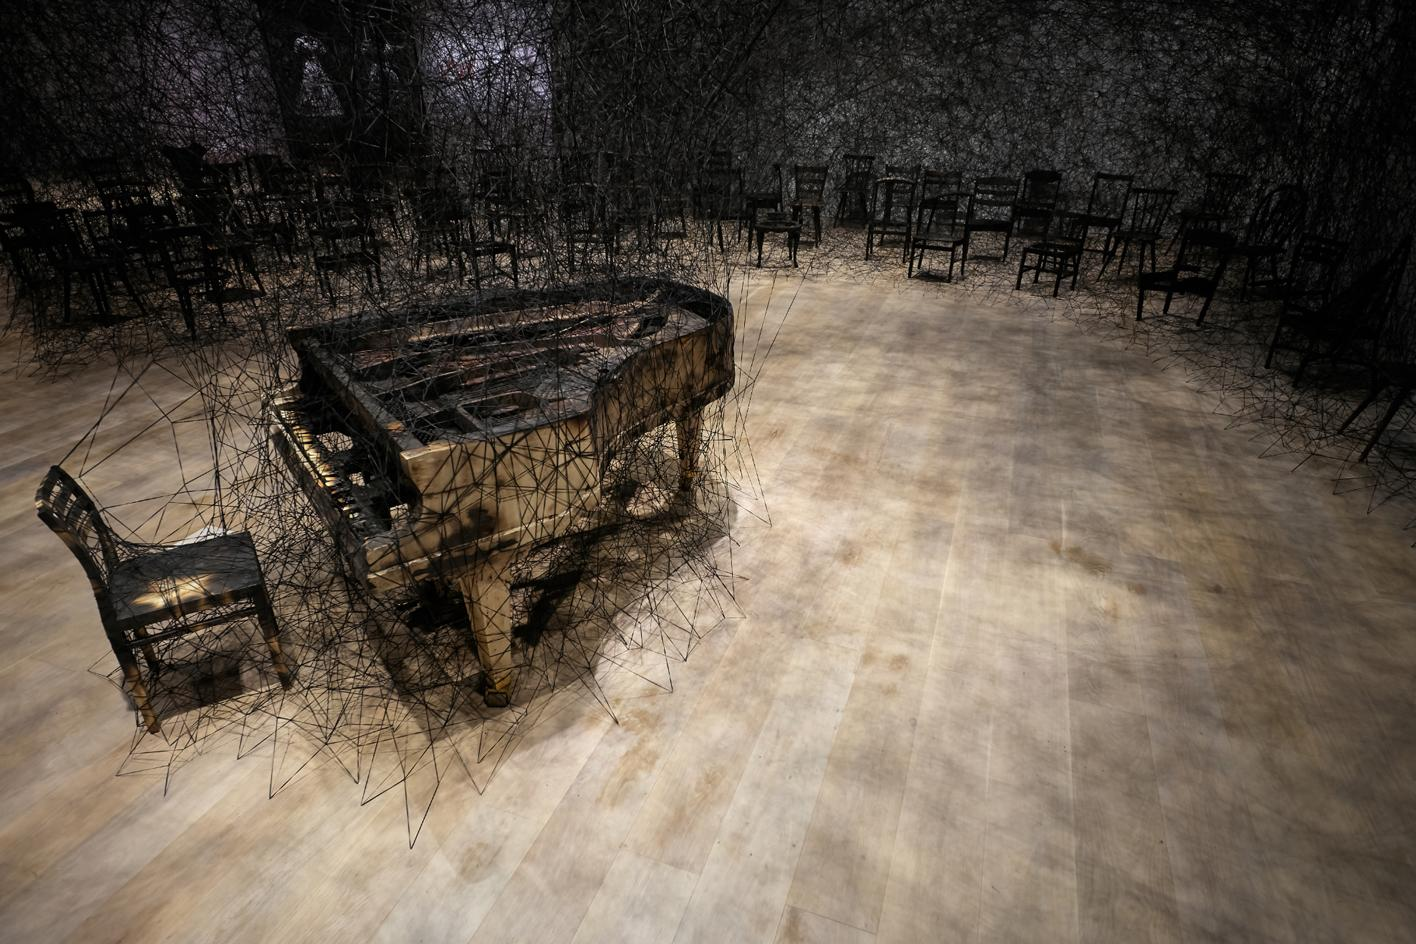 Chiharu Shiota's installation, In Silence at the Mori Art Museum in Tokyo, comprising a black Alcantara thread emanating from a burnt piano and chair